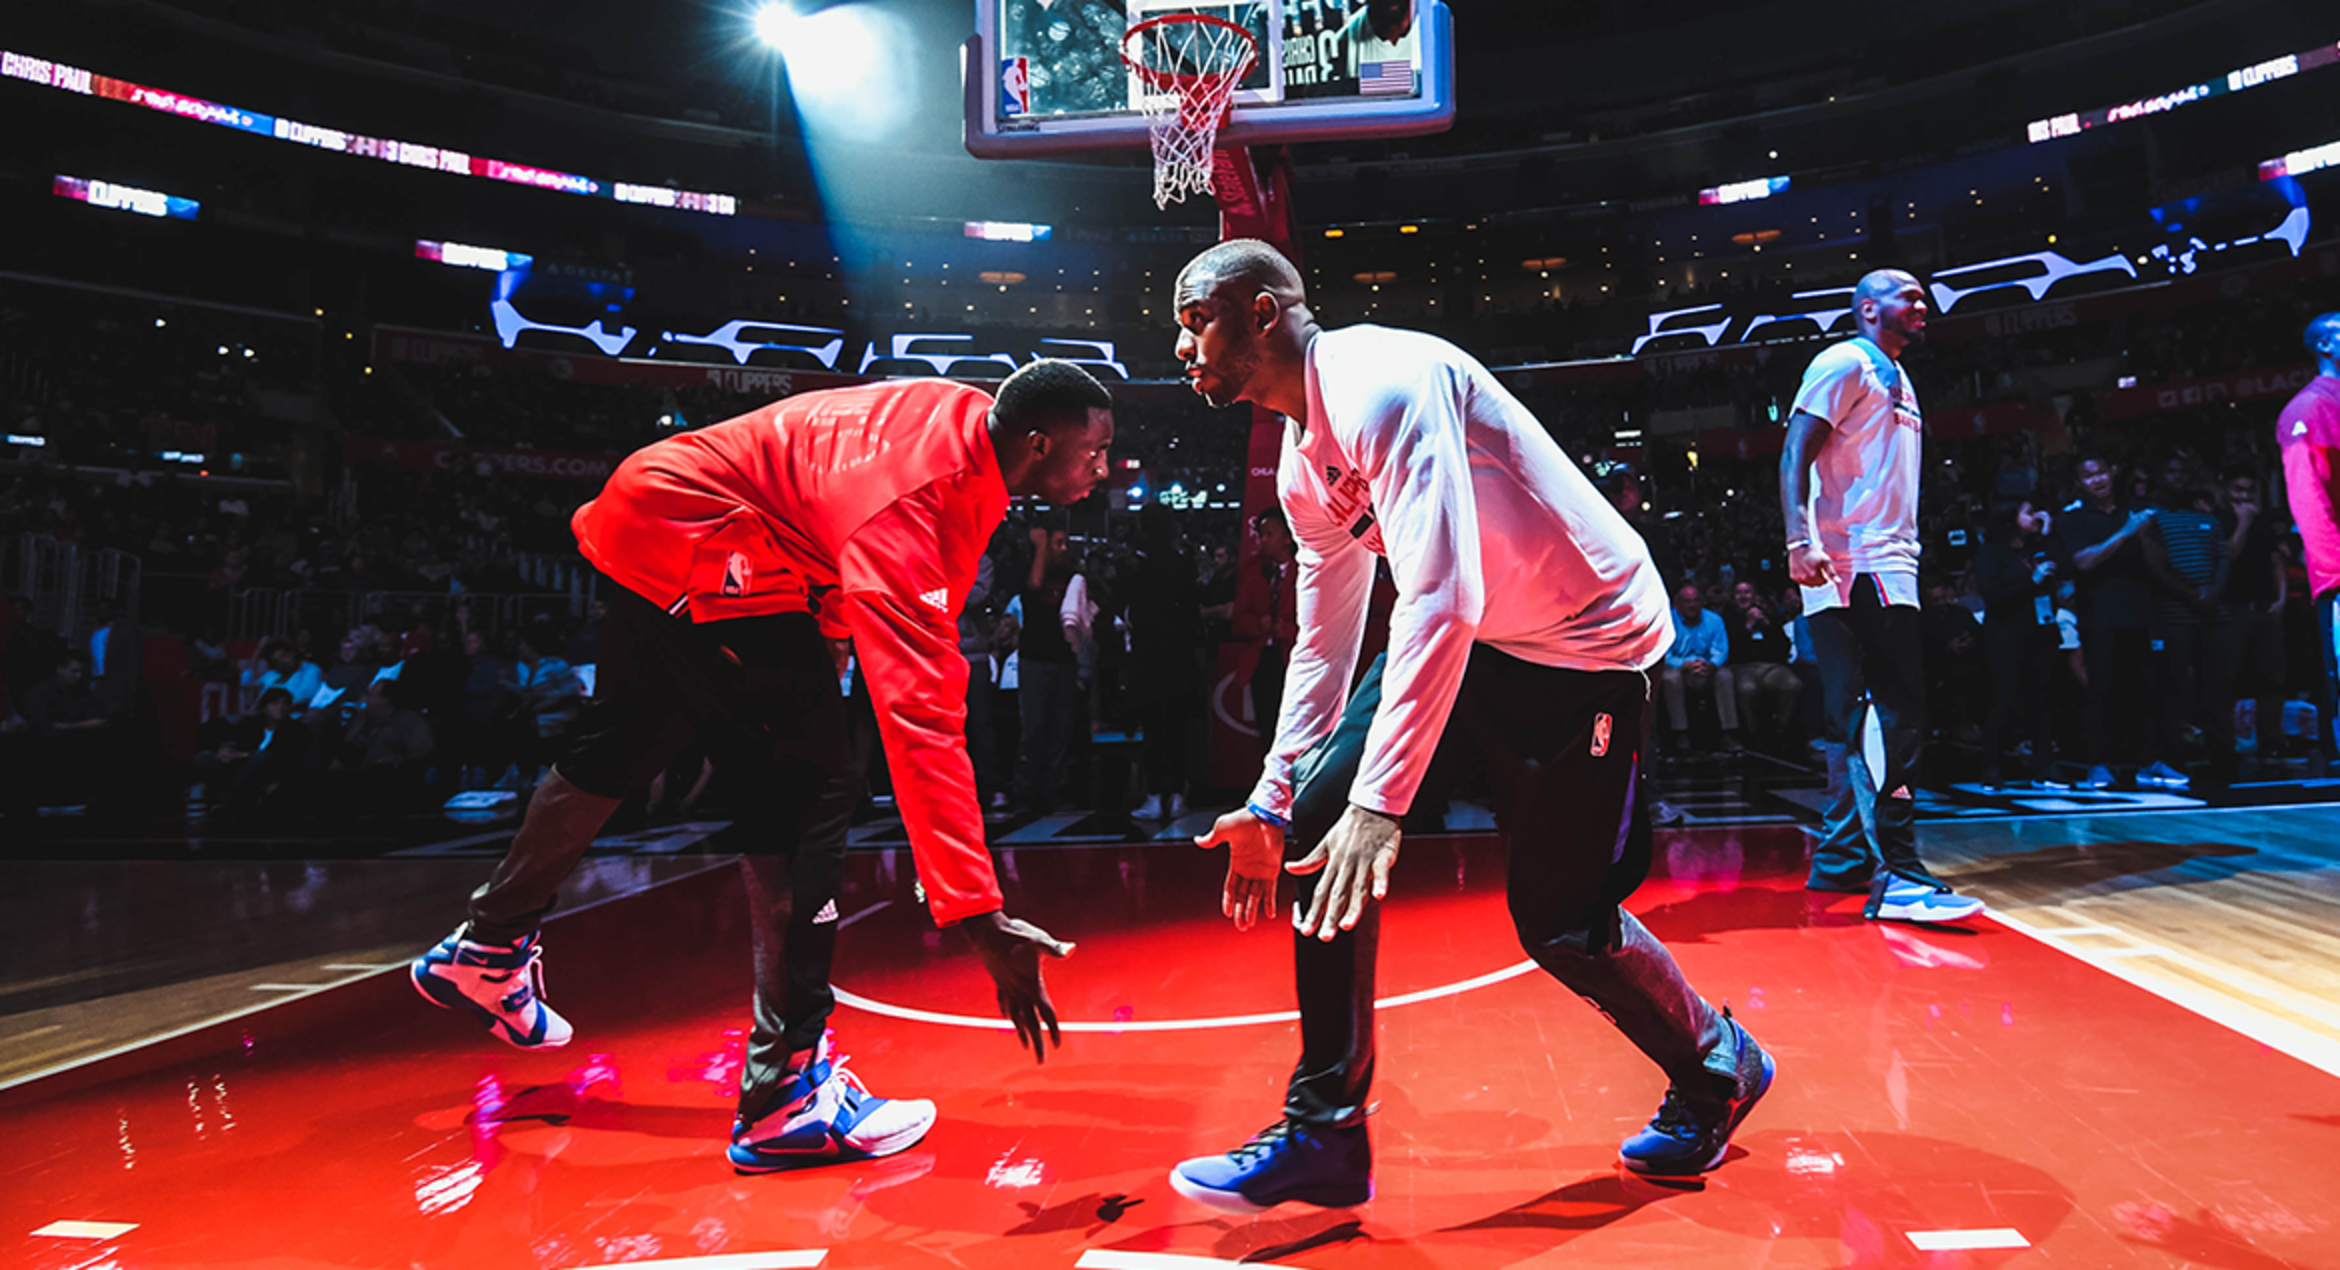 Image of Clippers Finally Get To Practice, With Focus On Defensive Slippage